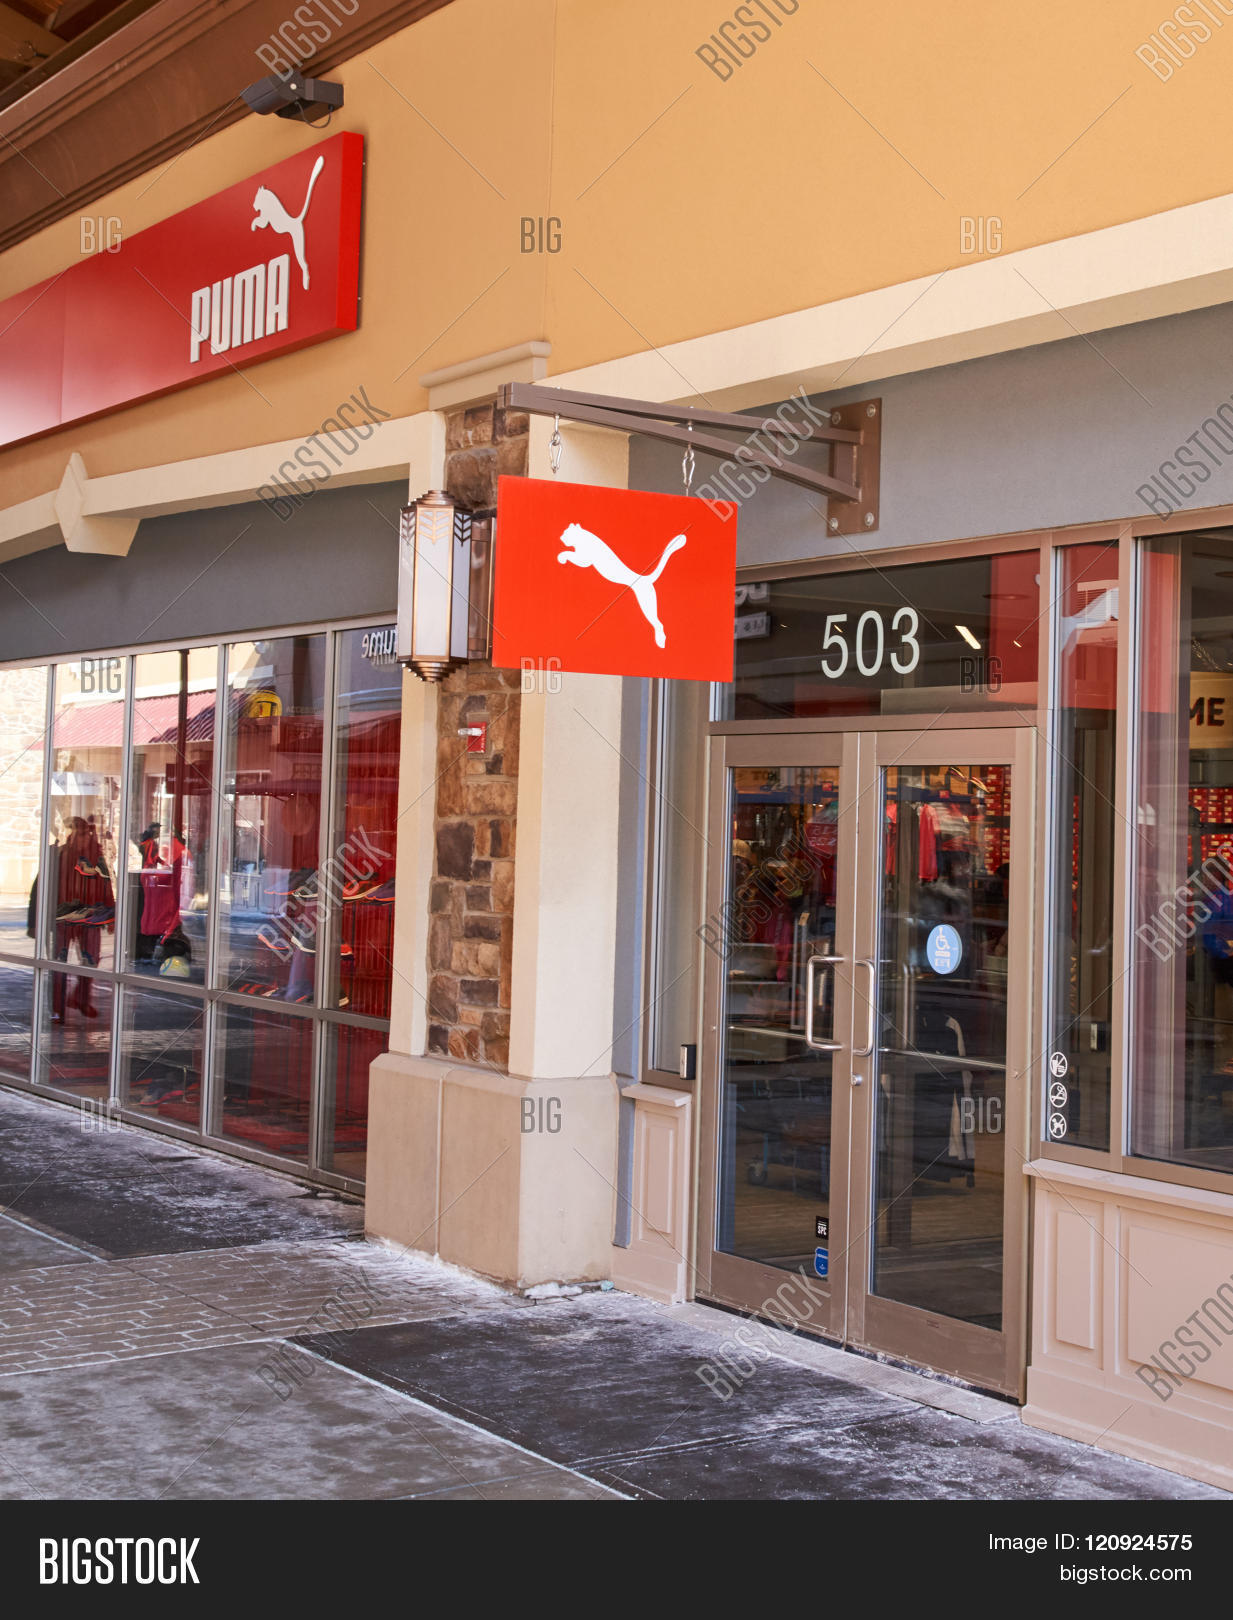 puma outlets locations sgkk  MONTREAL CANADA